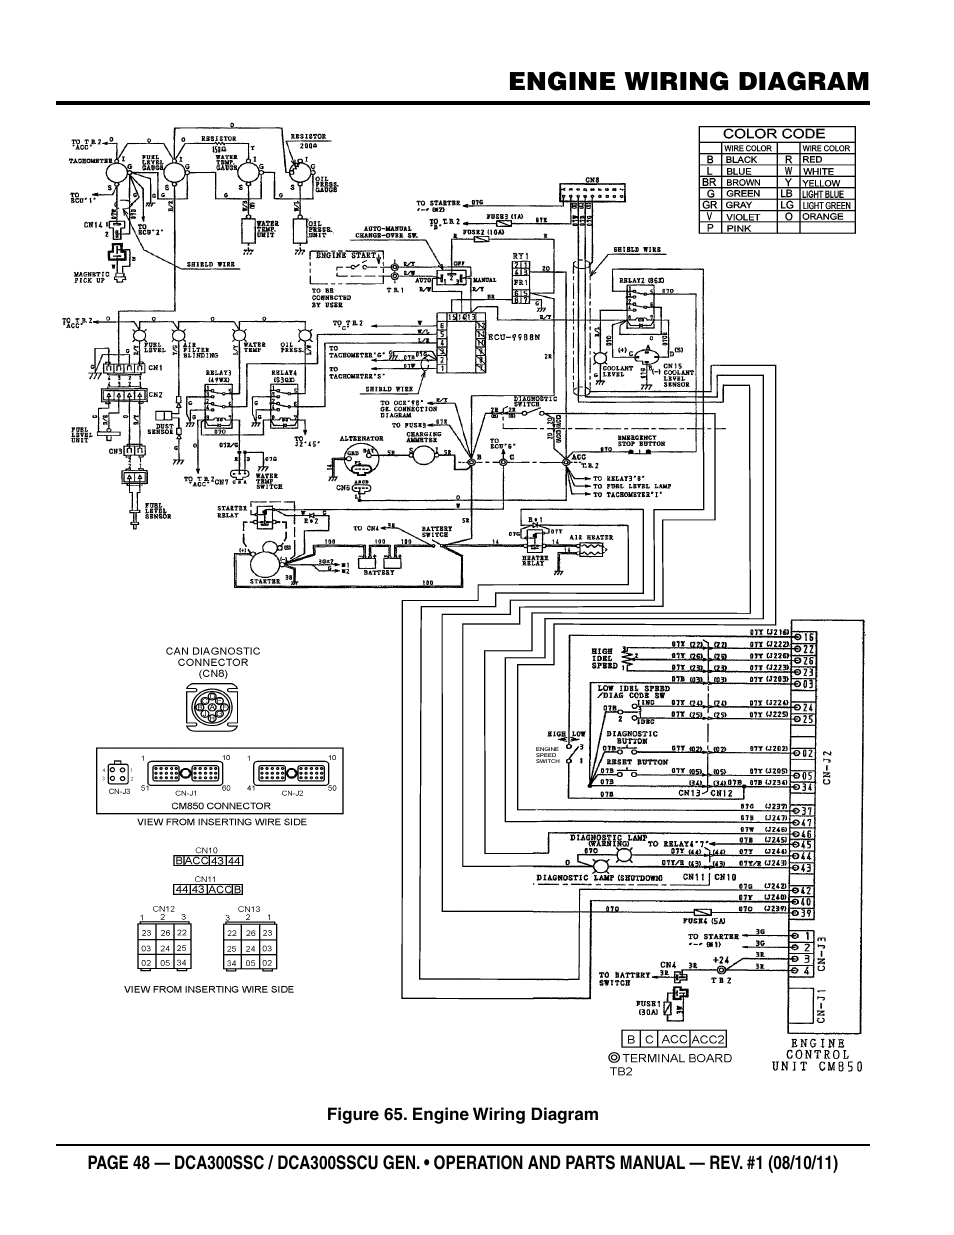 cummins pcc2100 wiring diagram operator